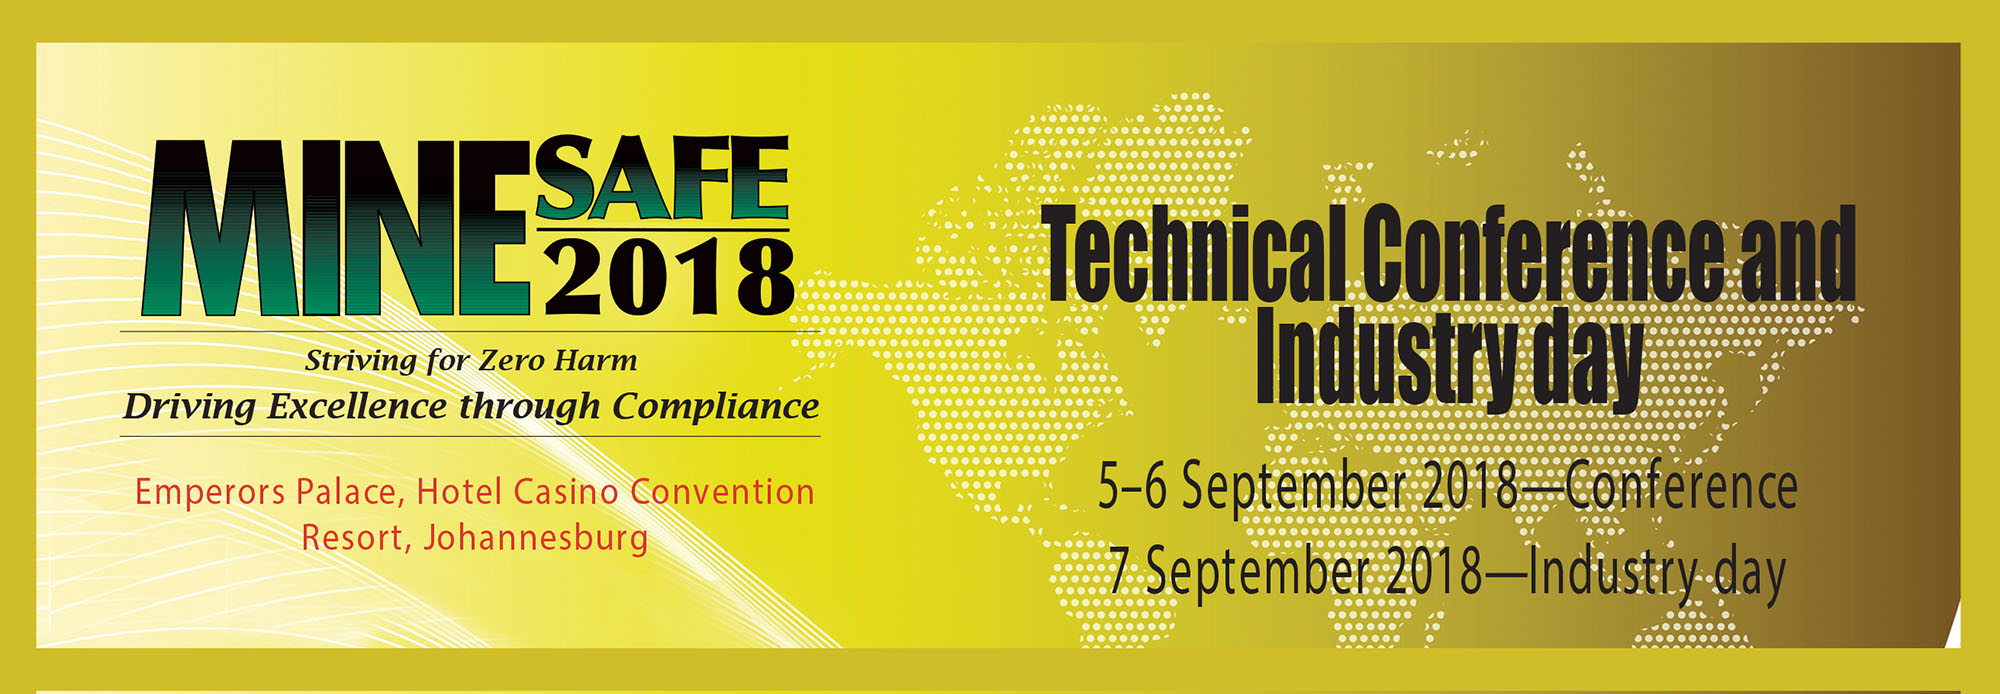 minesafe banner small